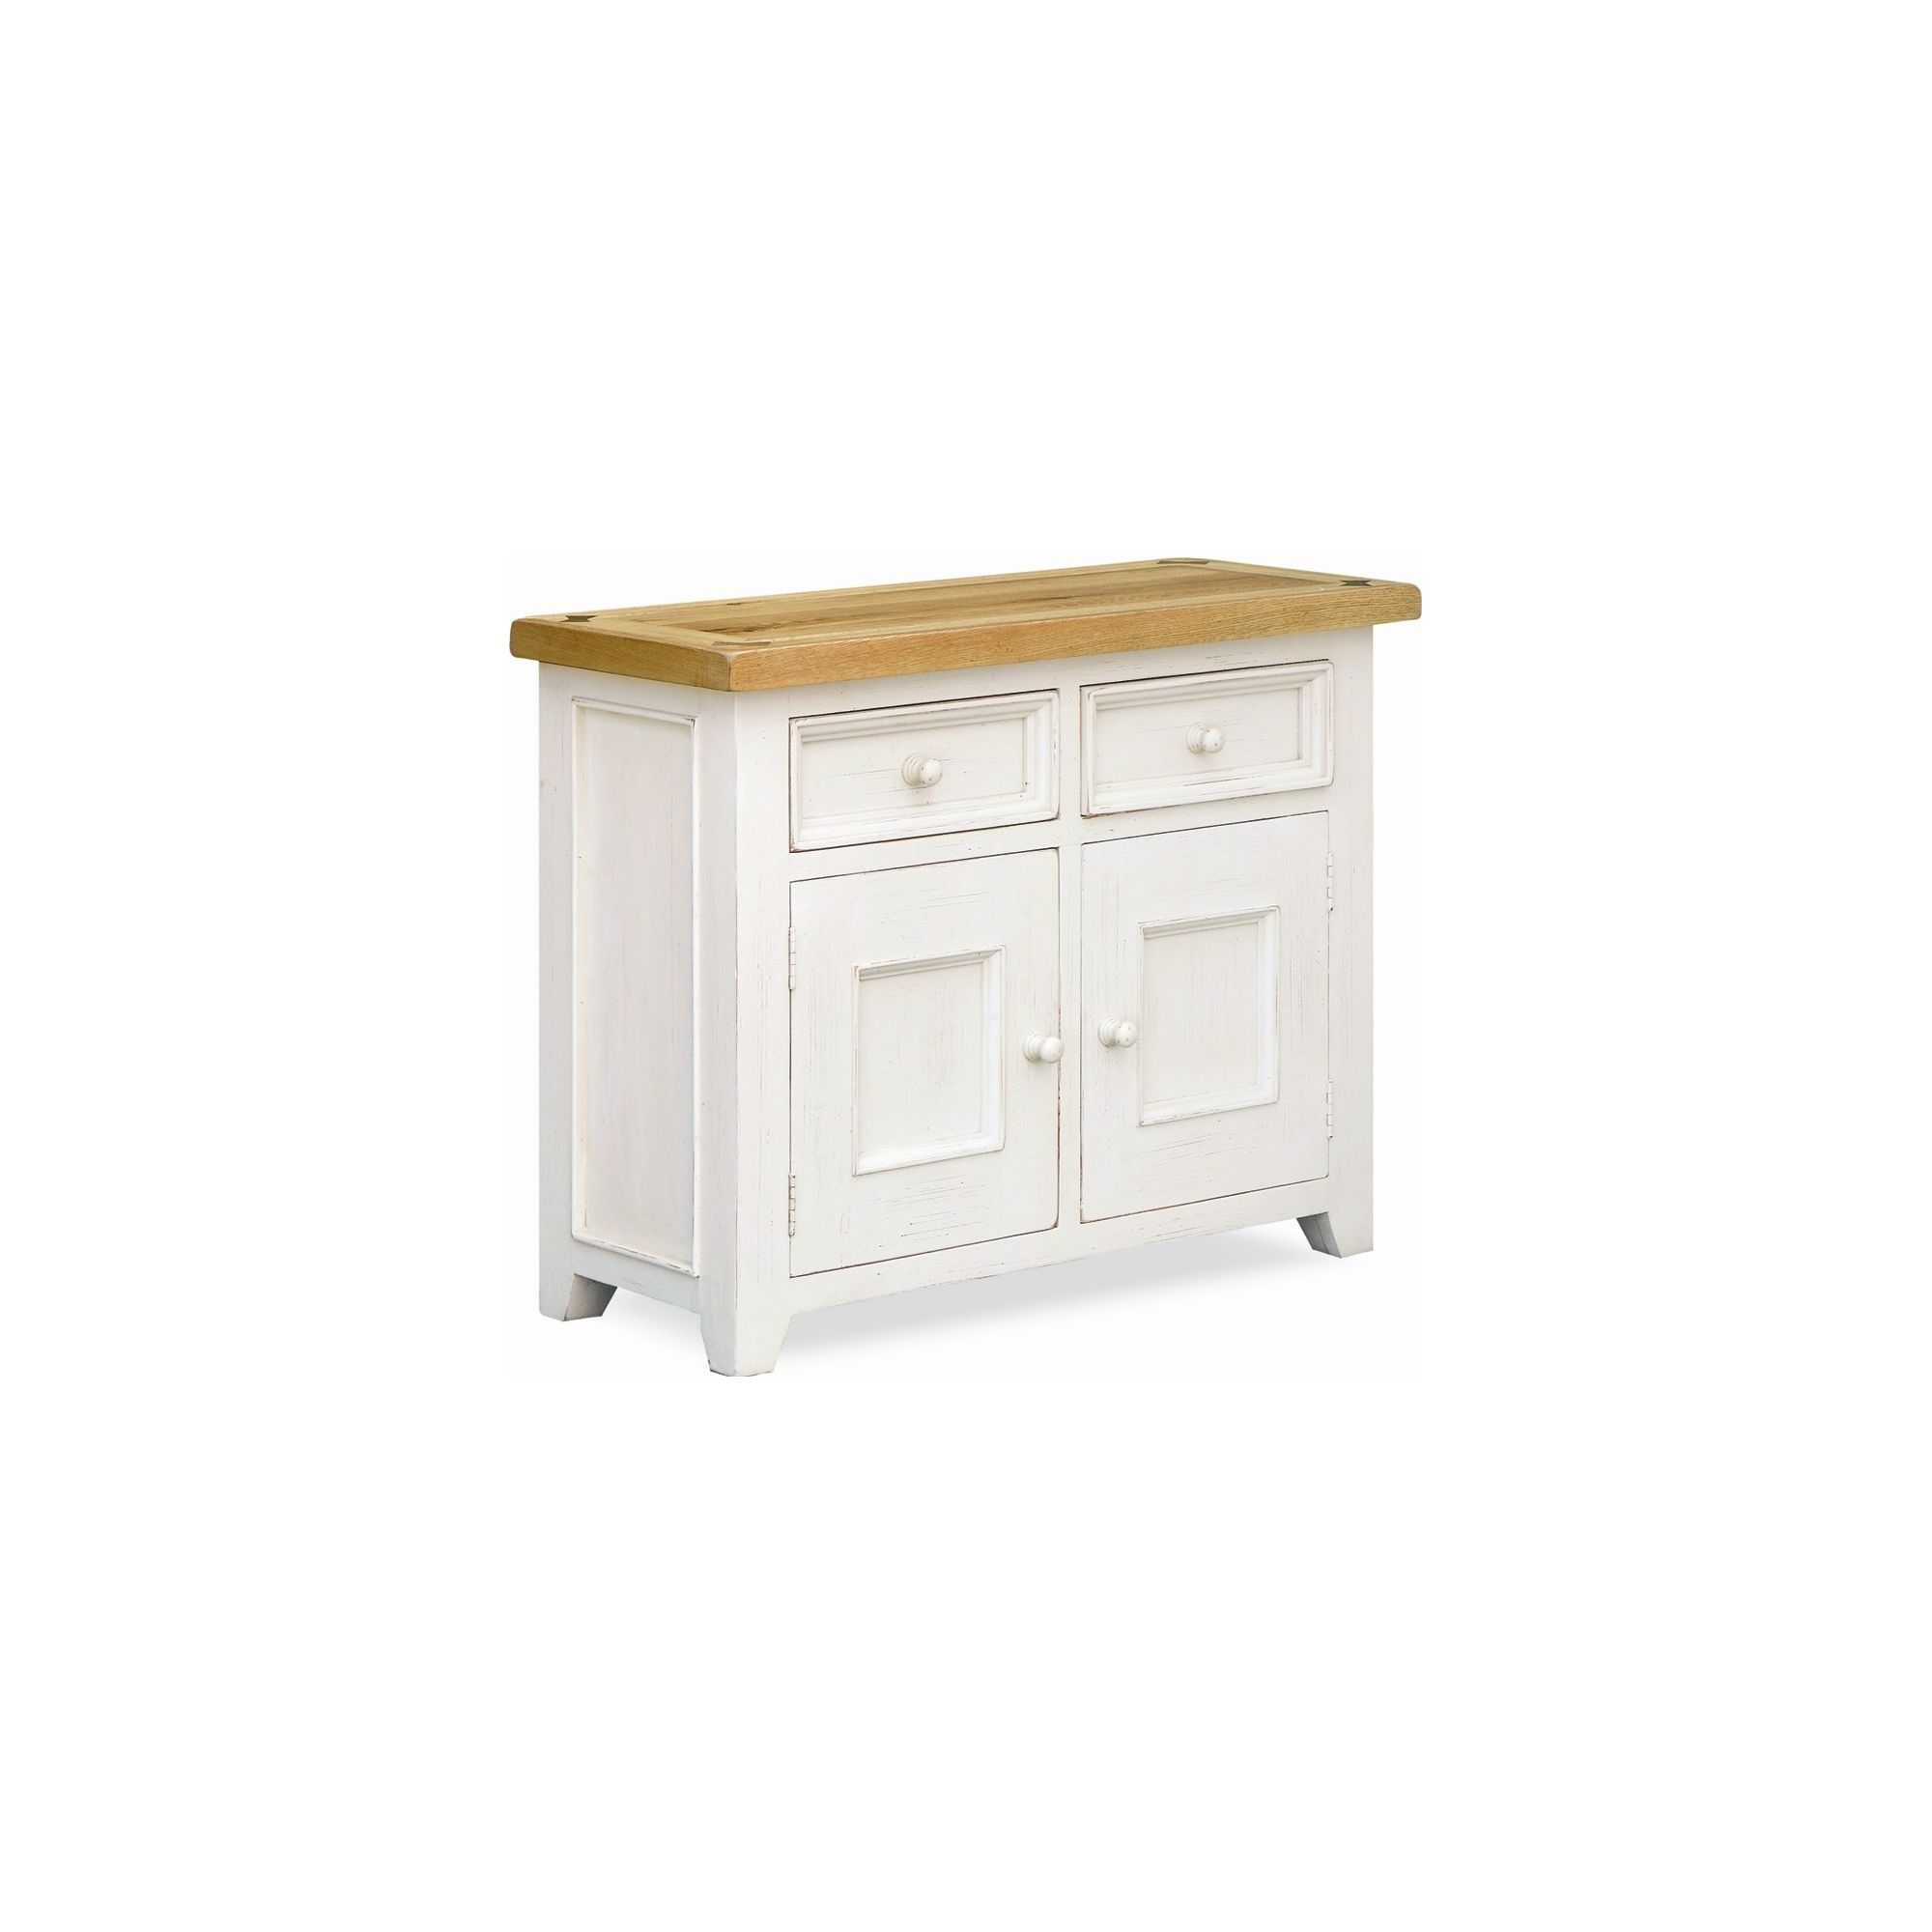 Alterton Furniture Wiltshire Sideboard at Tesco Direct